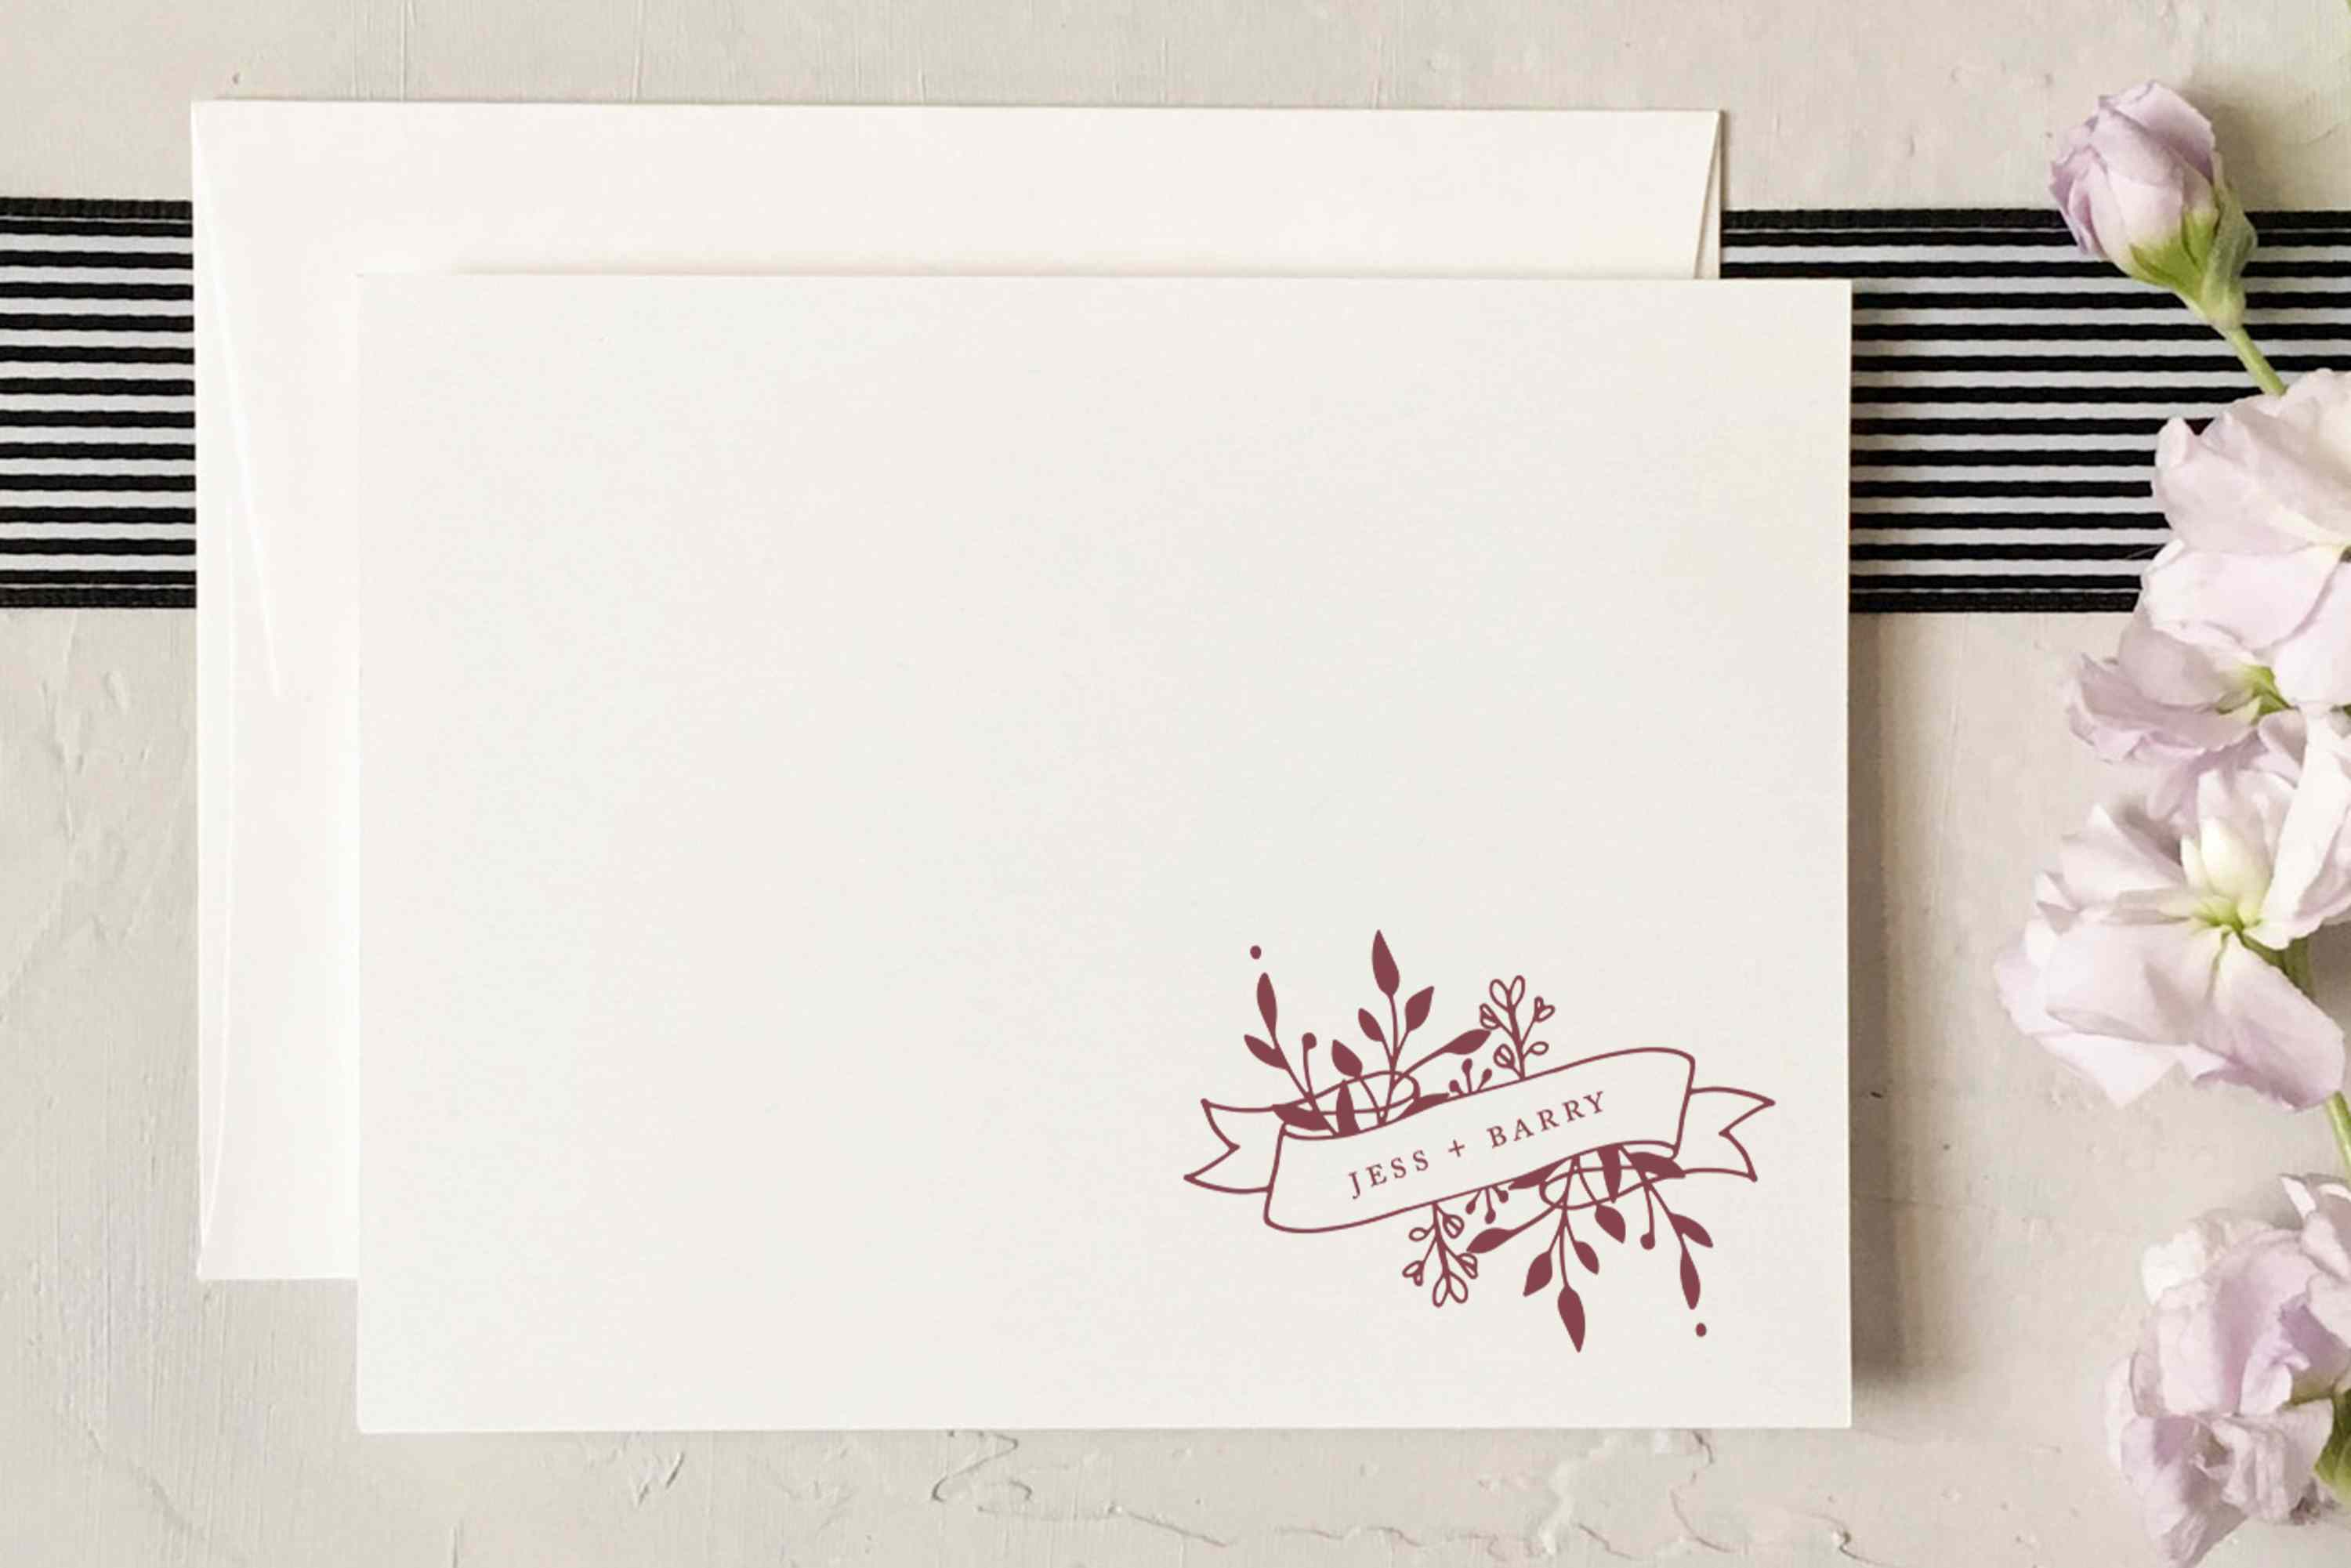 Couples Note Cards Couples Personalized Stationery Wedding Thank You Notes Gift Personalized Folded Note Cards Couples Thank You Notes